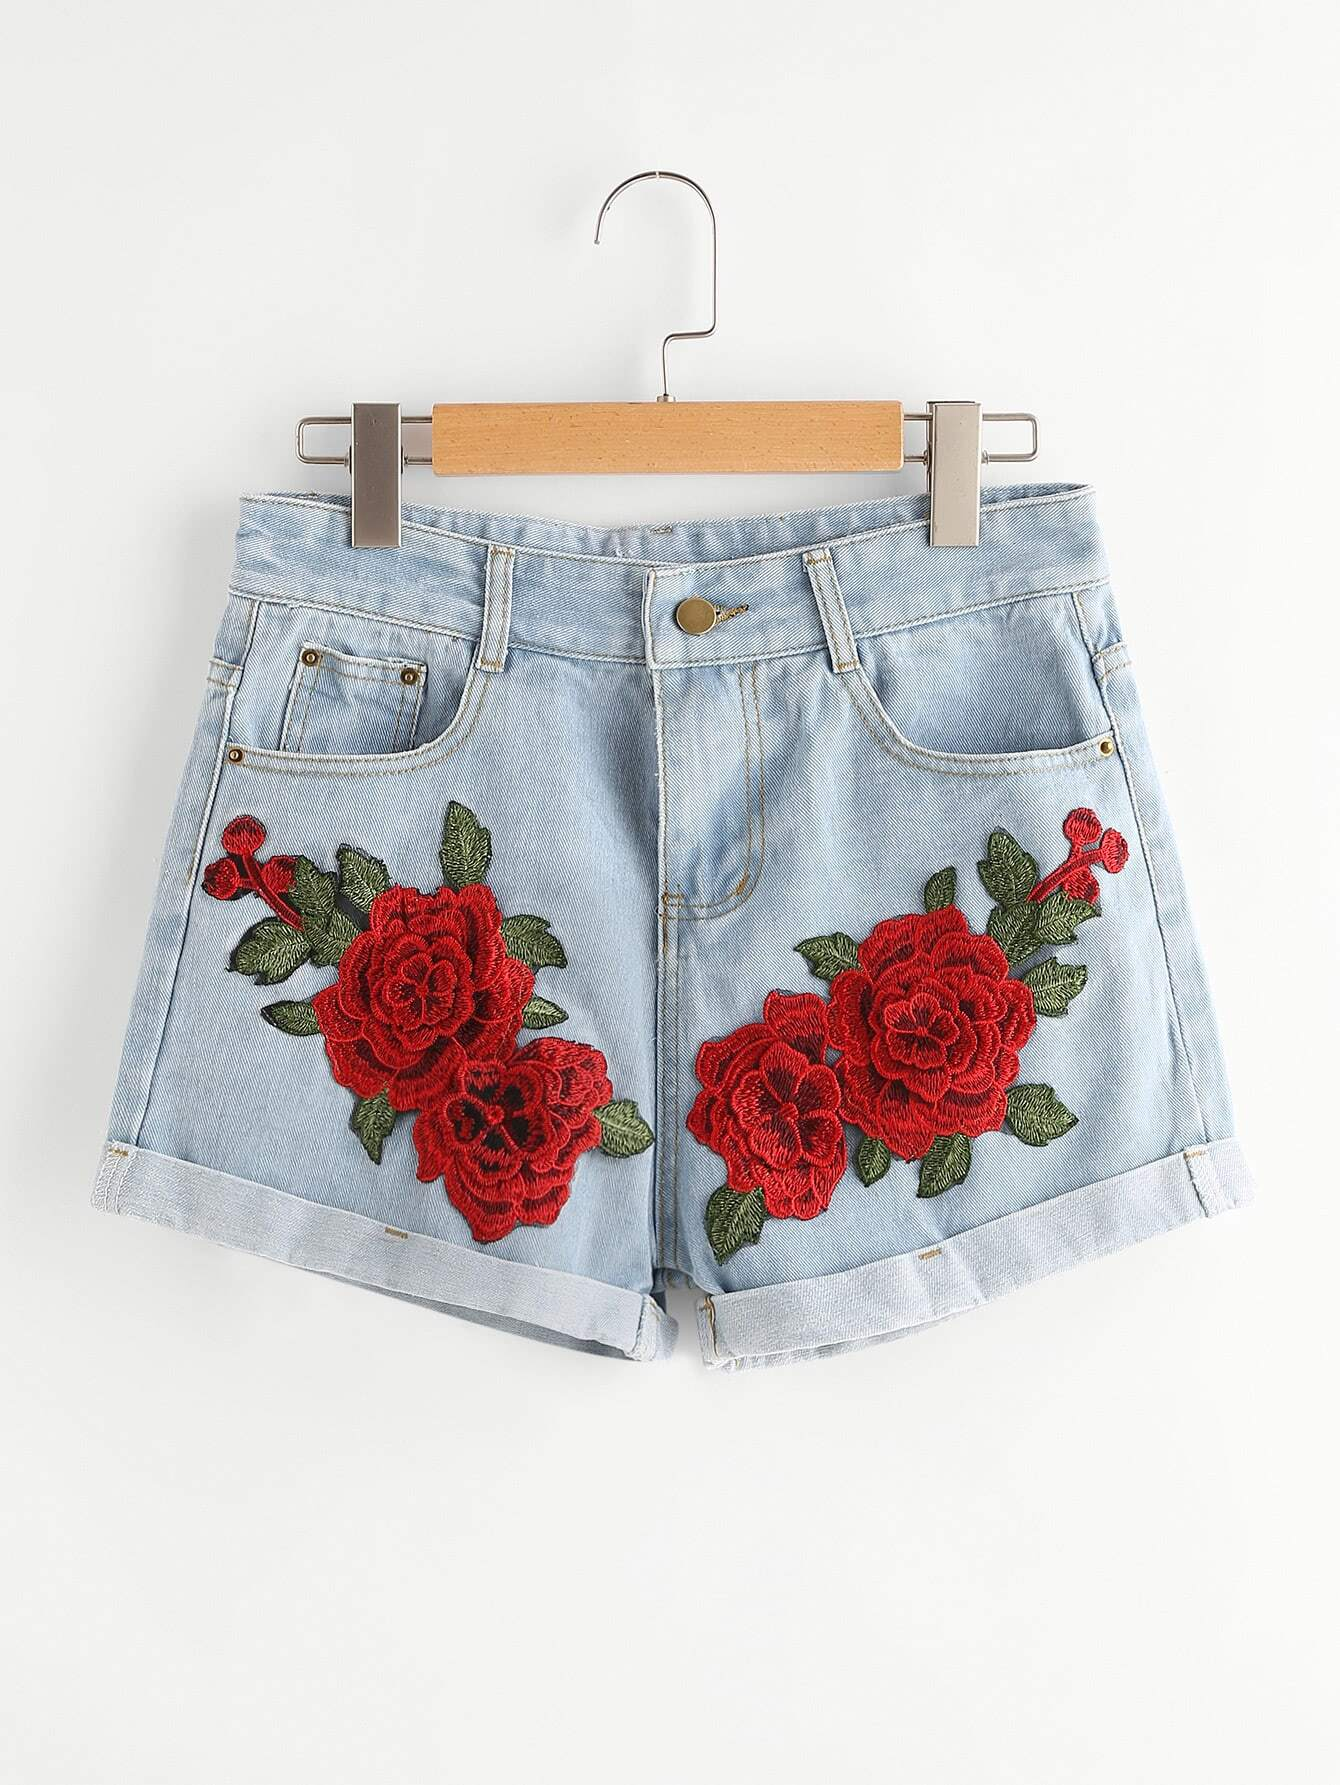 Rose Embroidered Applique Cuffed Denim Shorts thumbnail